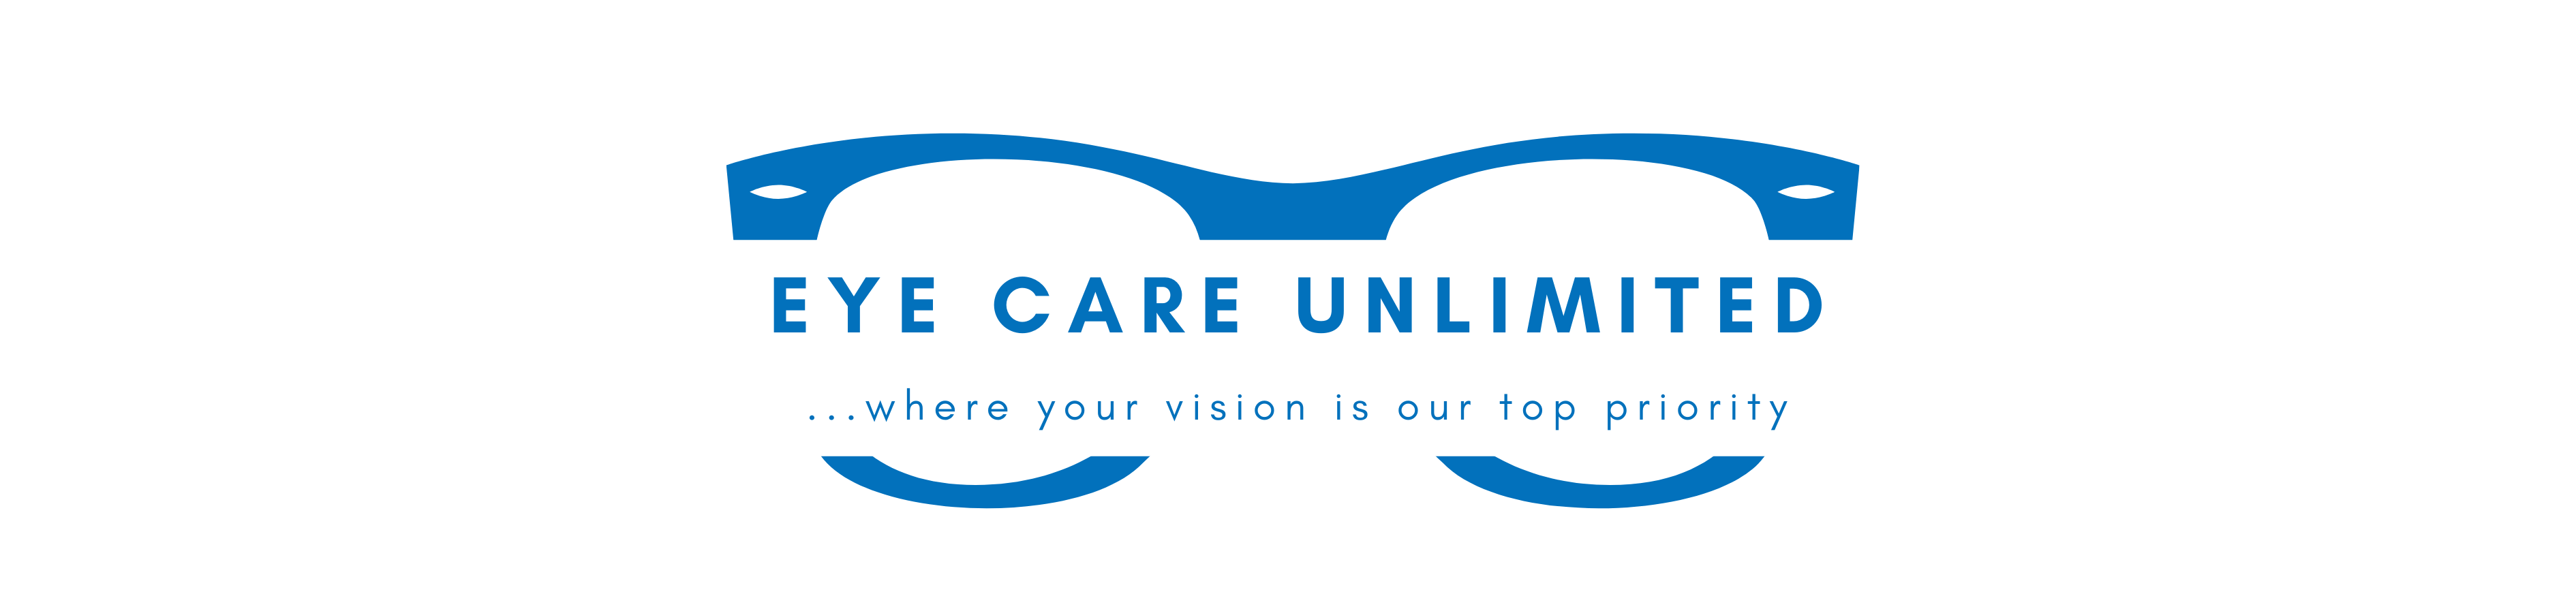 Eye Care Unlimited